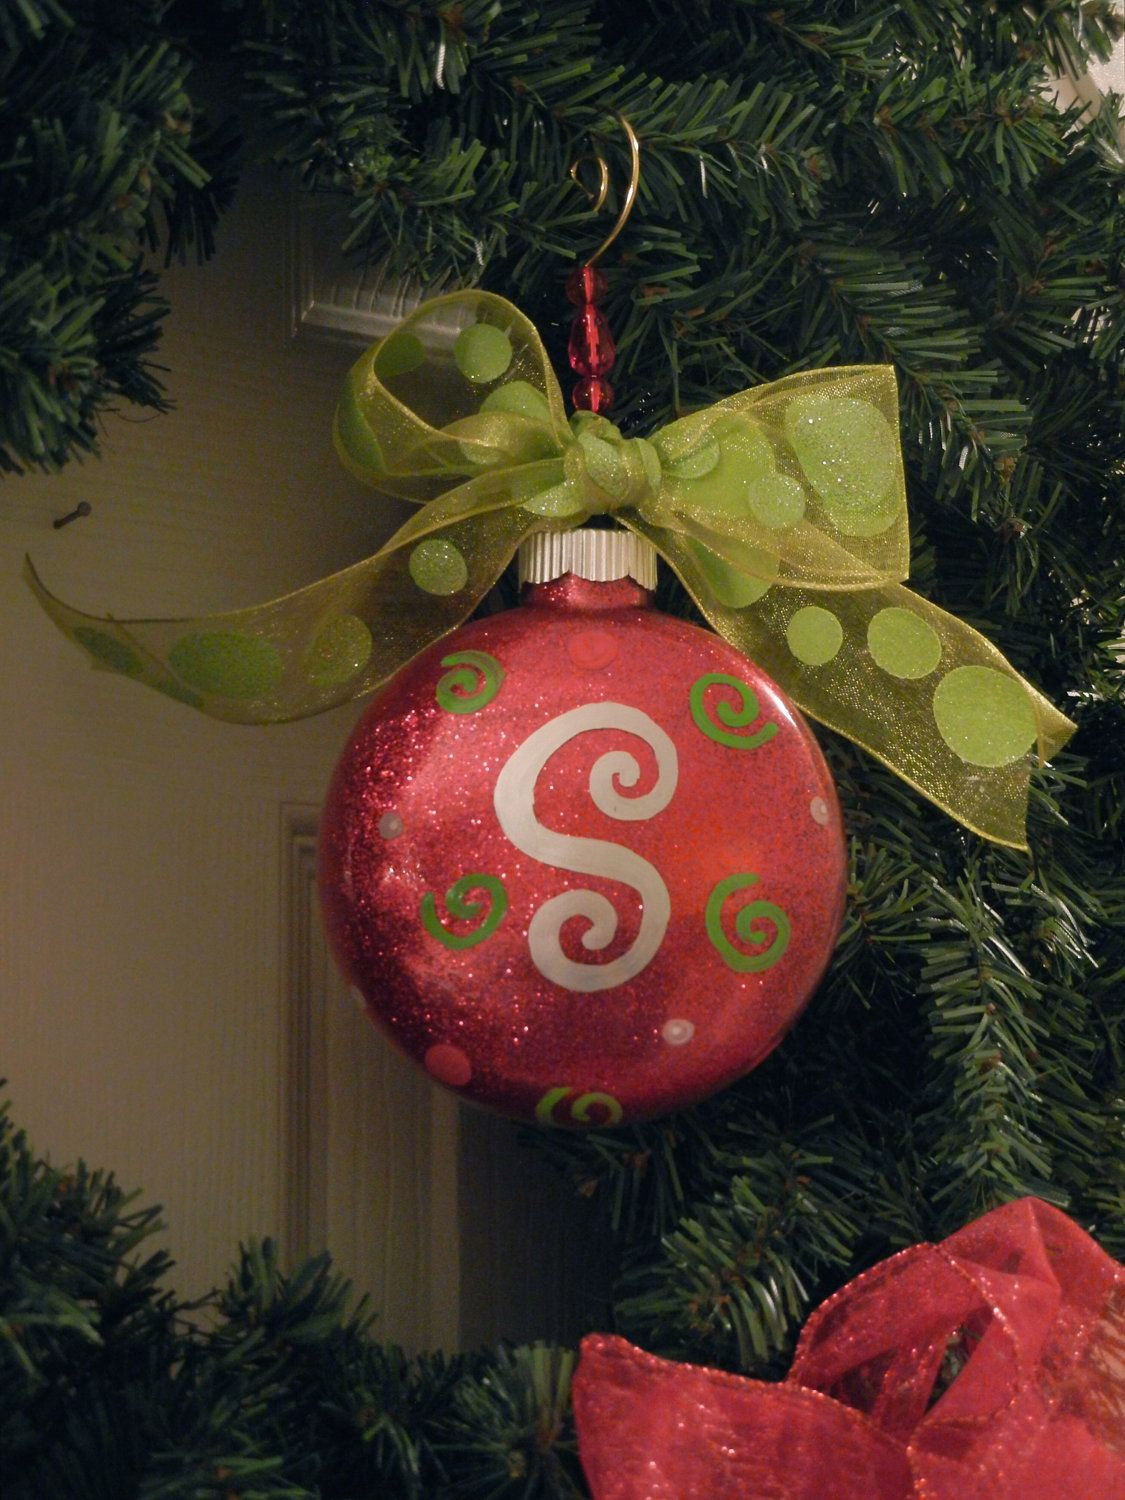 Find This Pin And More On Ornaments By Tdhenline Personalized Initial Christmas Ornament Poshpolkadotstudios